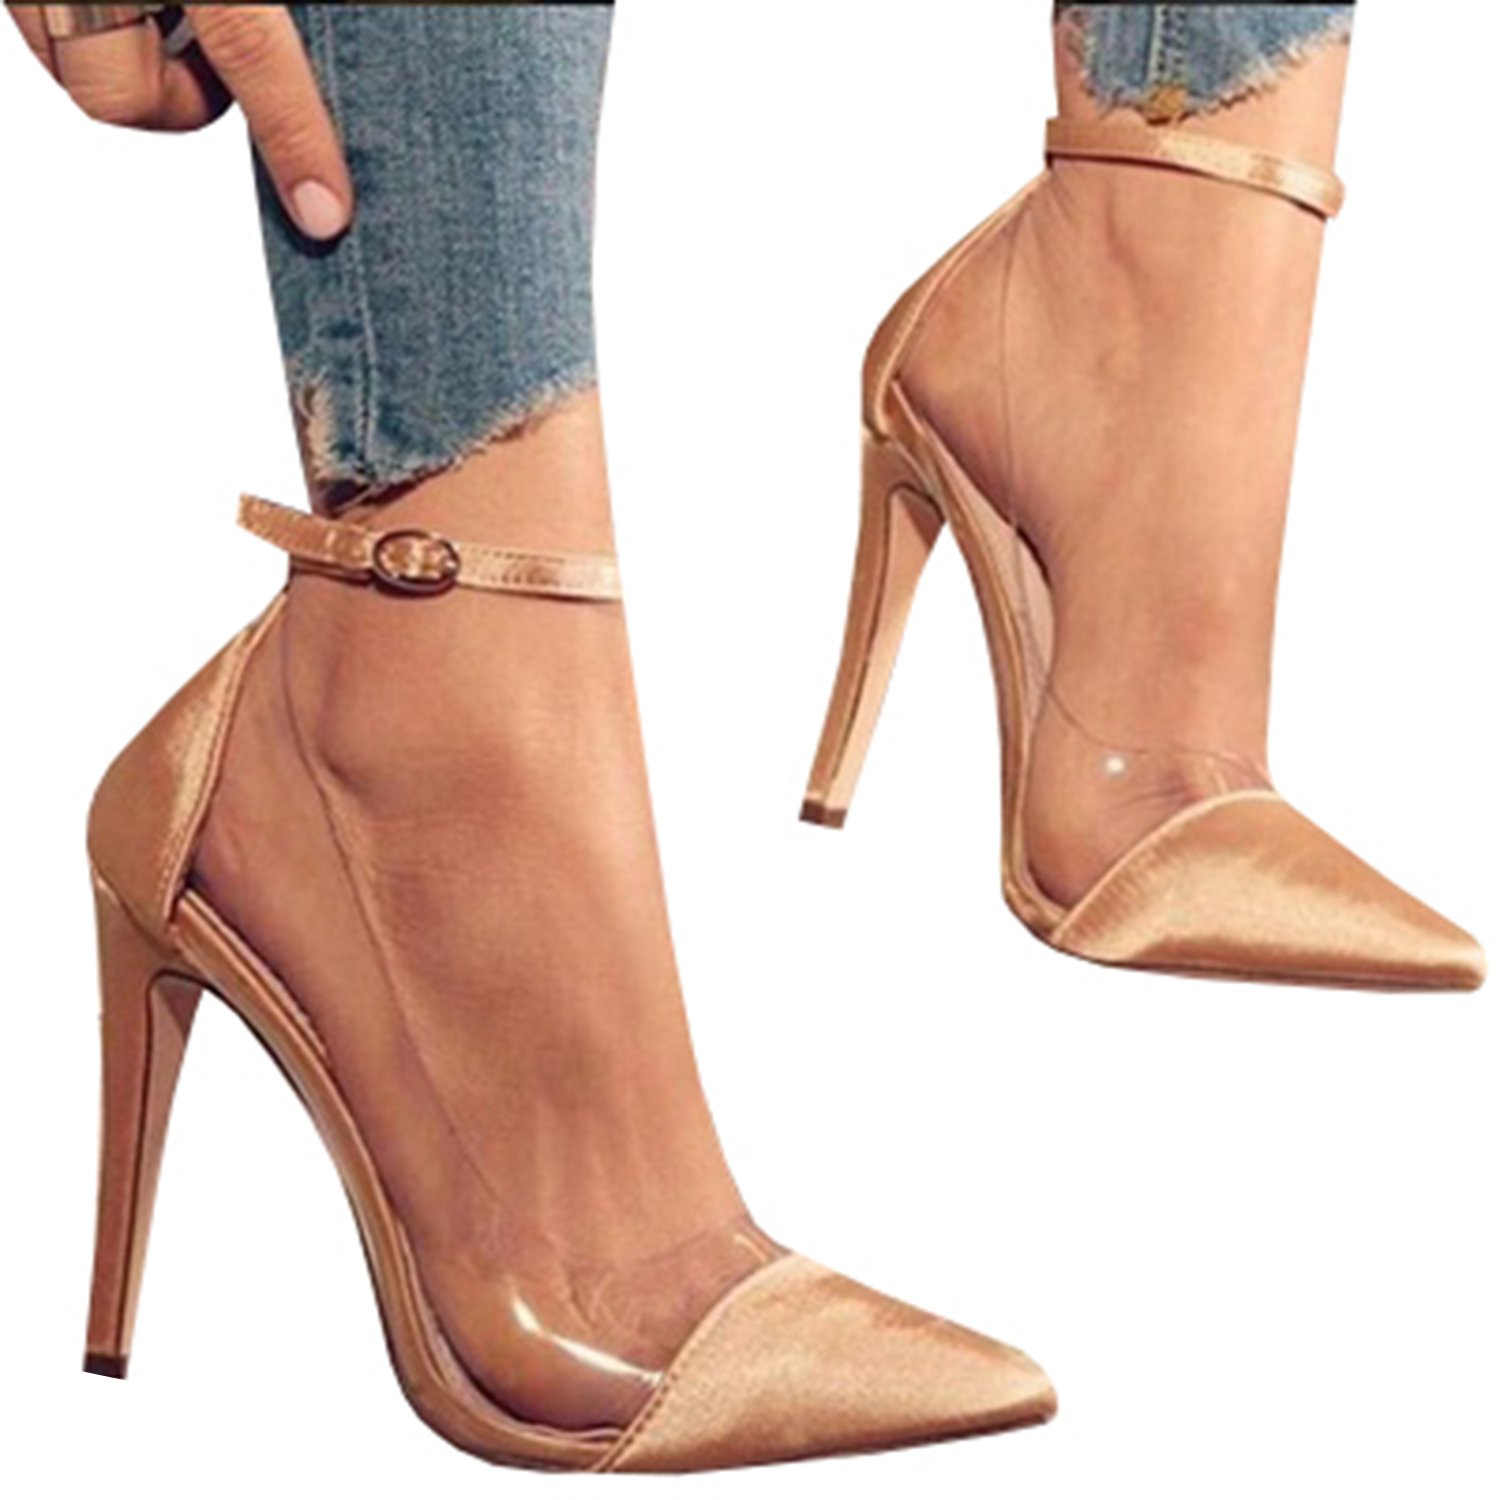 cfe0c818b5 Amazon.com | Syktkmx Womens Clear Pointed Toe Ankle Strap Stiletto Heels  Thin High Heel Pumps Shoes | Pumps